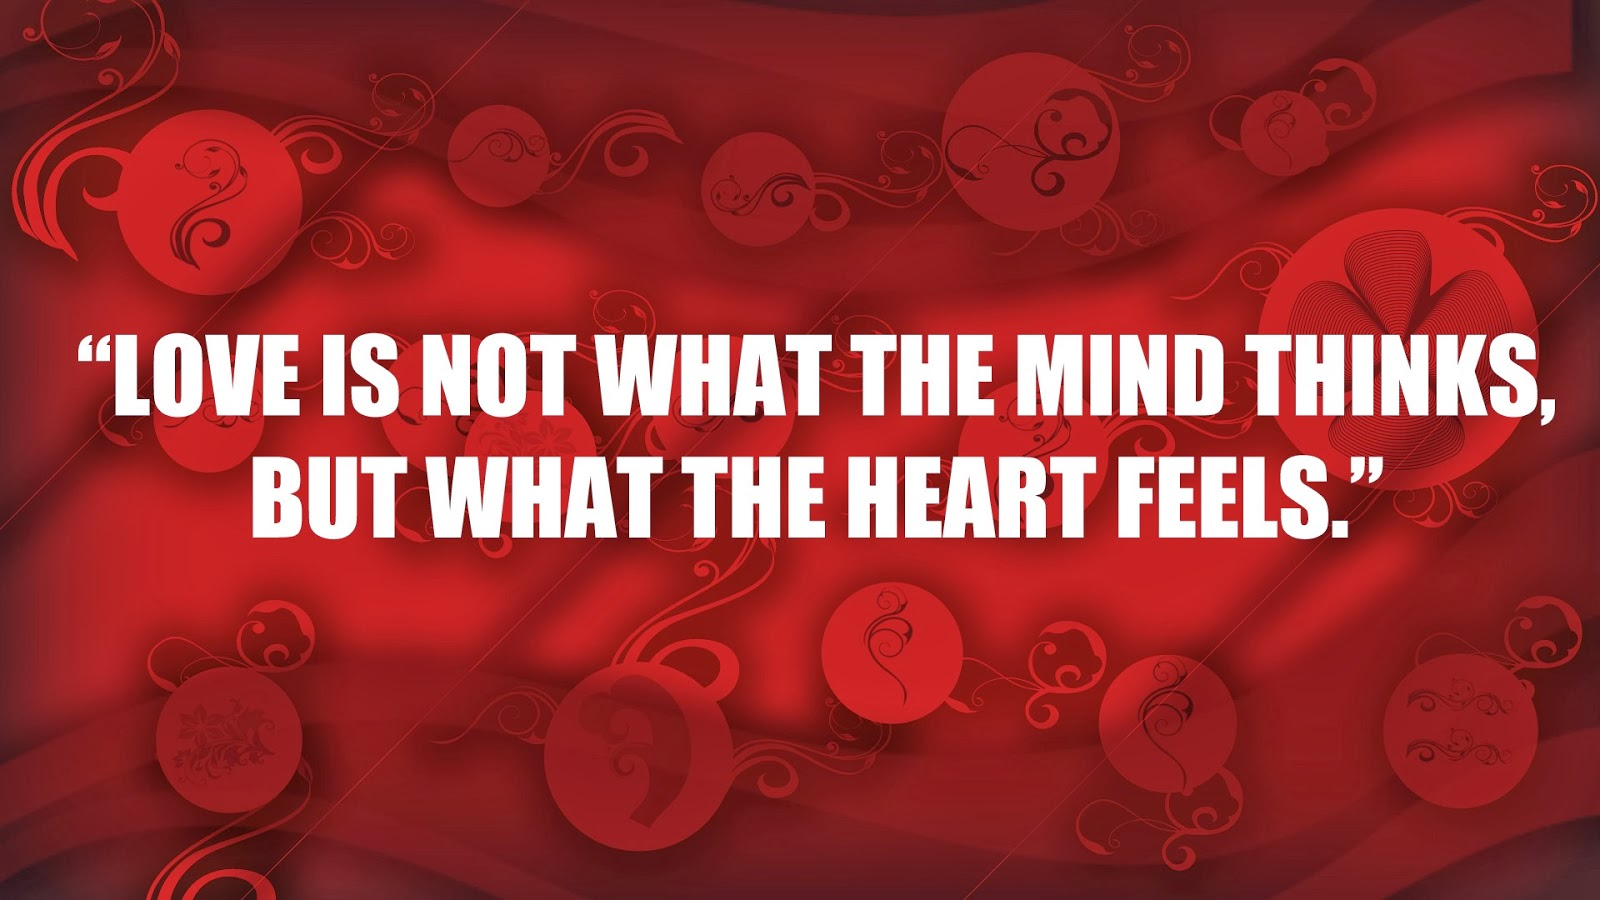 Heart Love Quotes Heart Touching Love Quotes Hd Wallpapers.